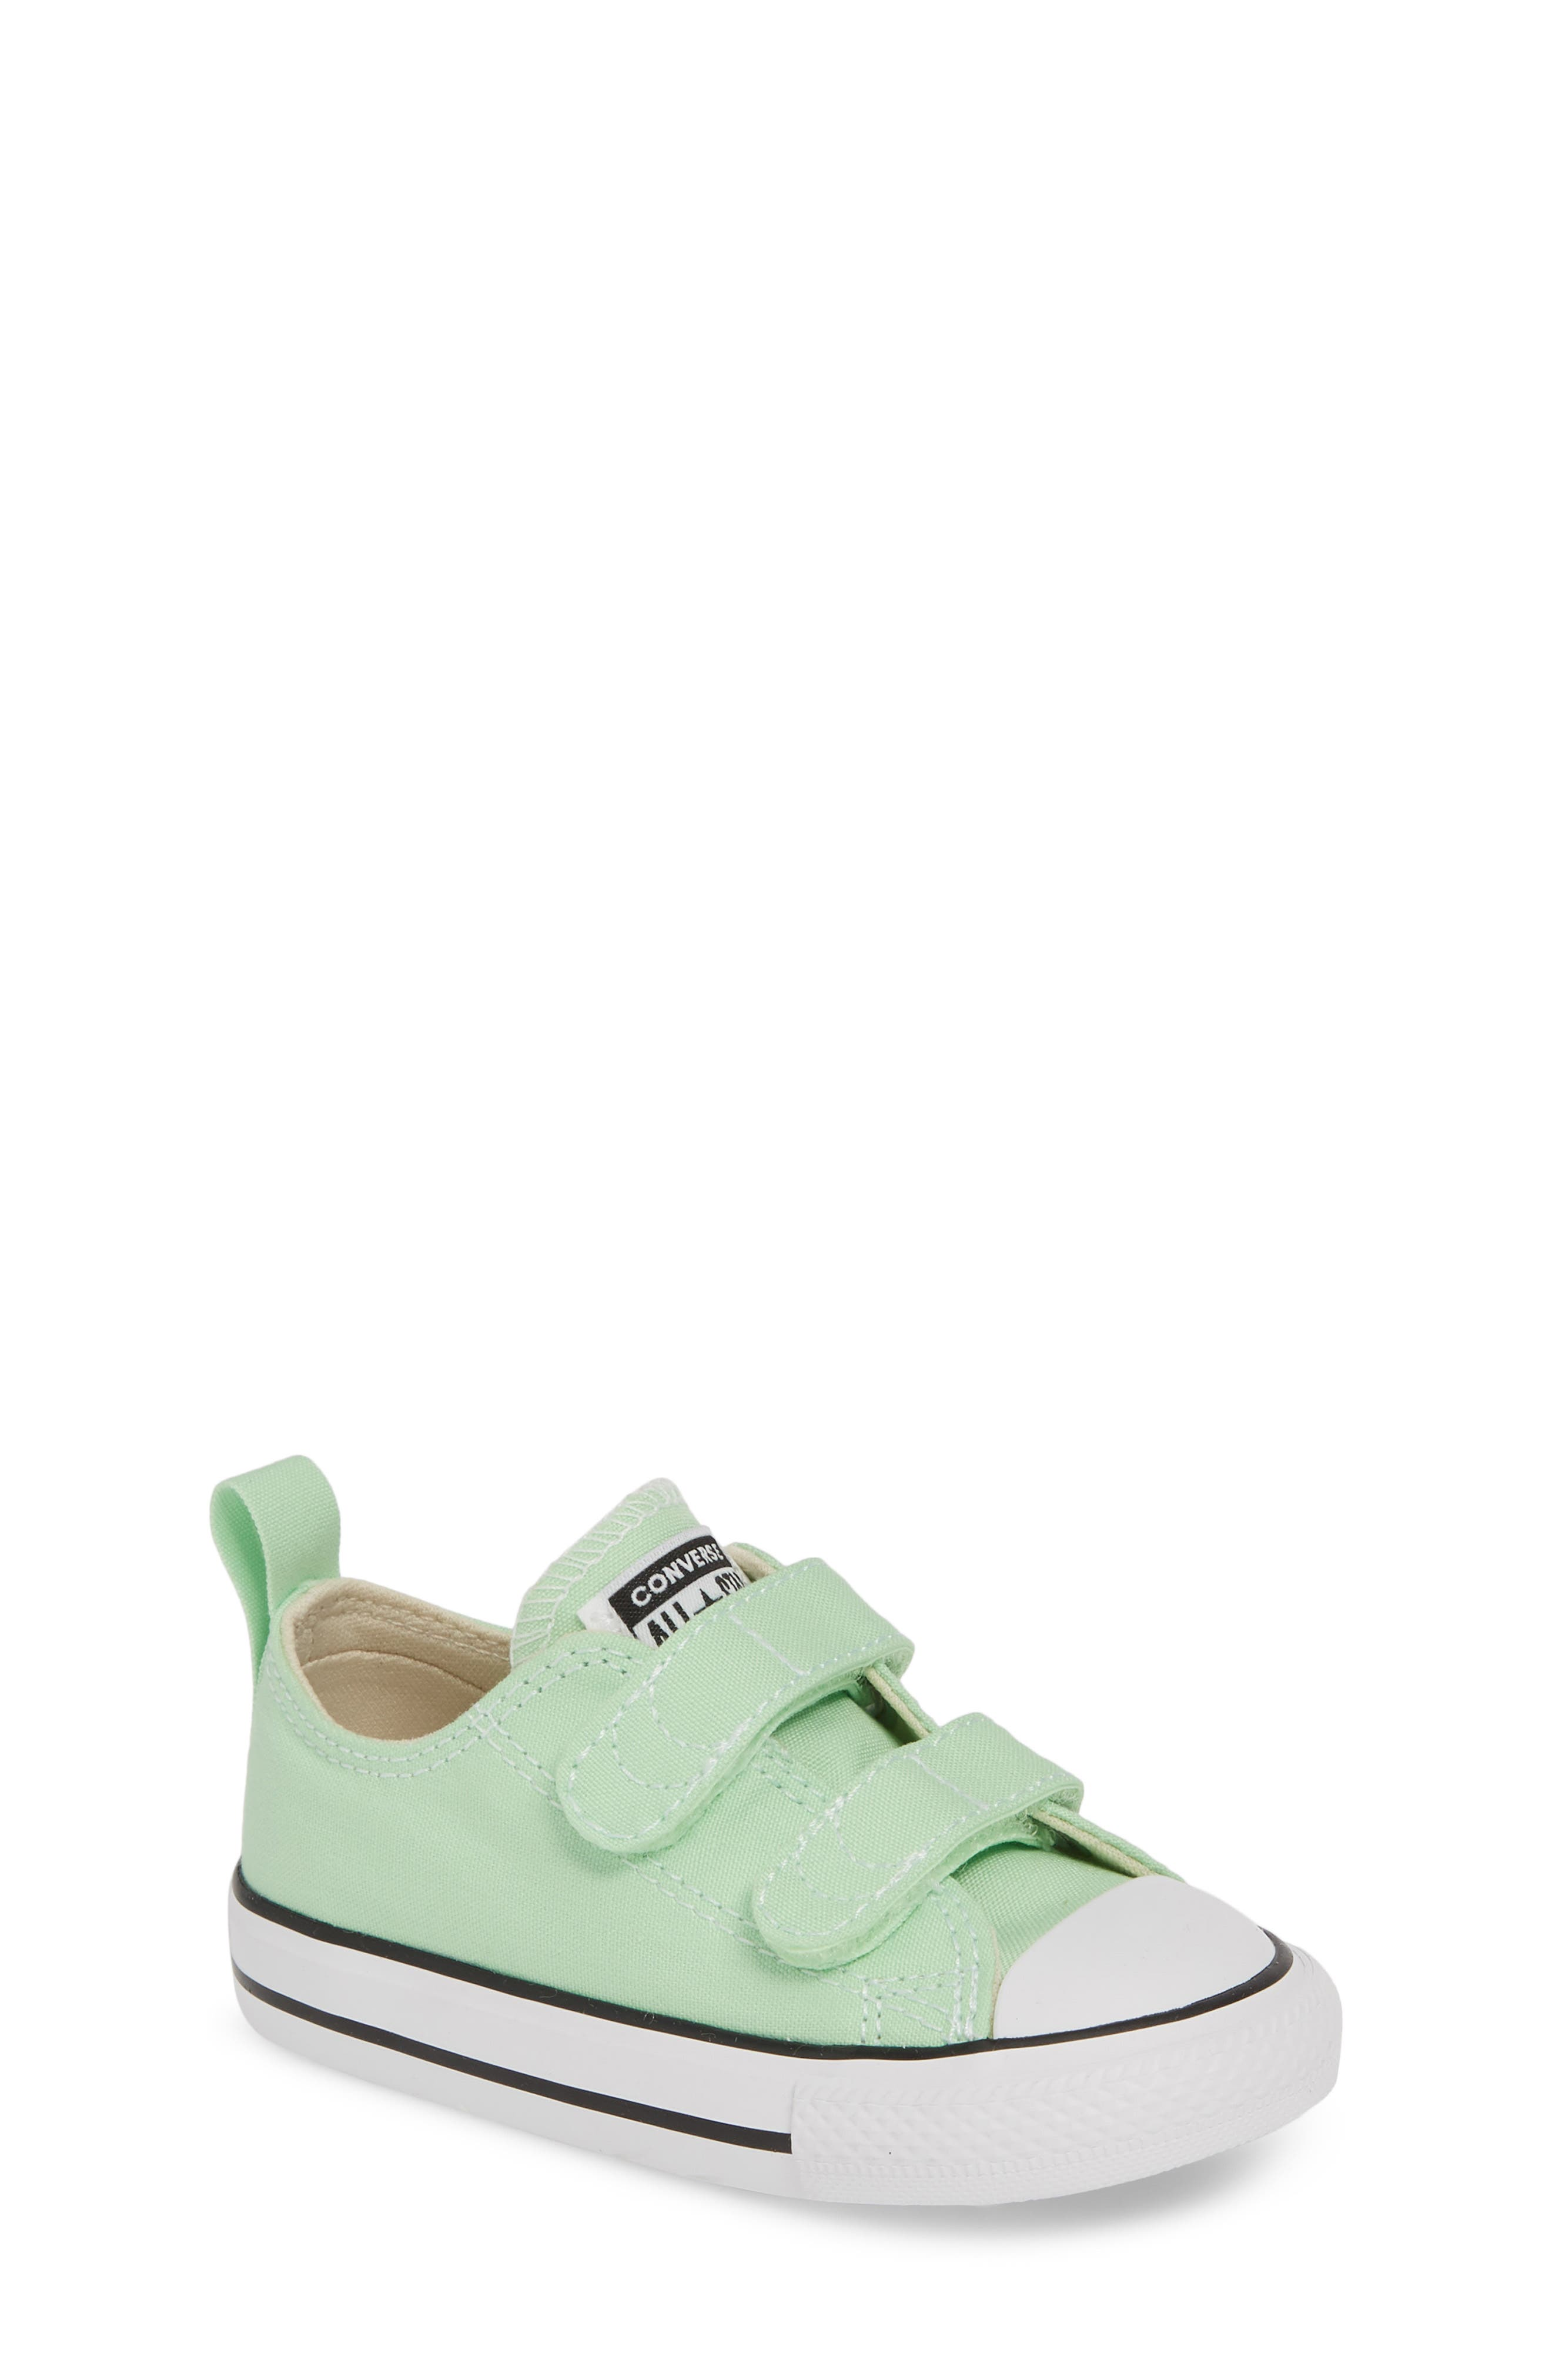 Chuck Taylor<sup>®</sup> 'Double Strap' Sneaker, Main, color, LT. APHID GREEN